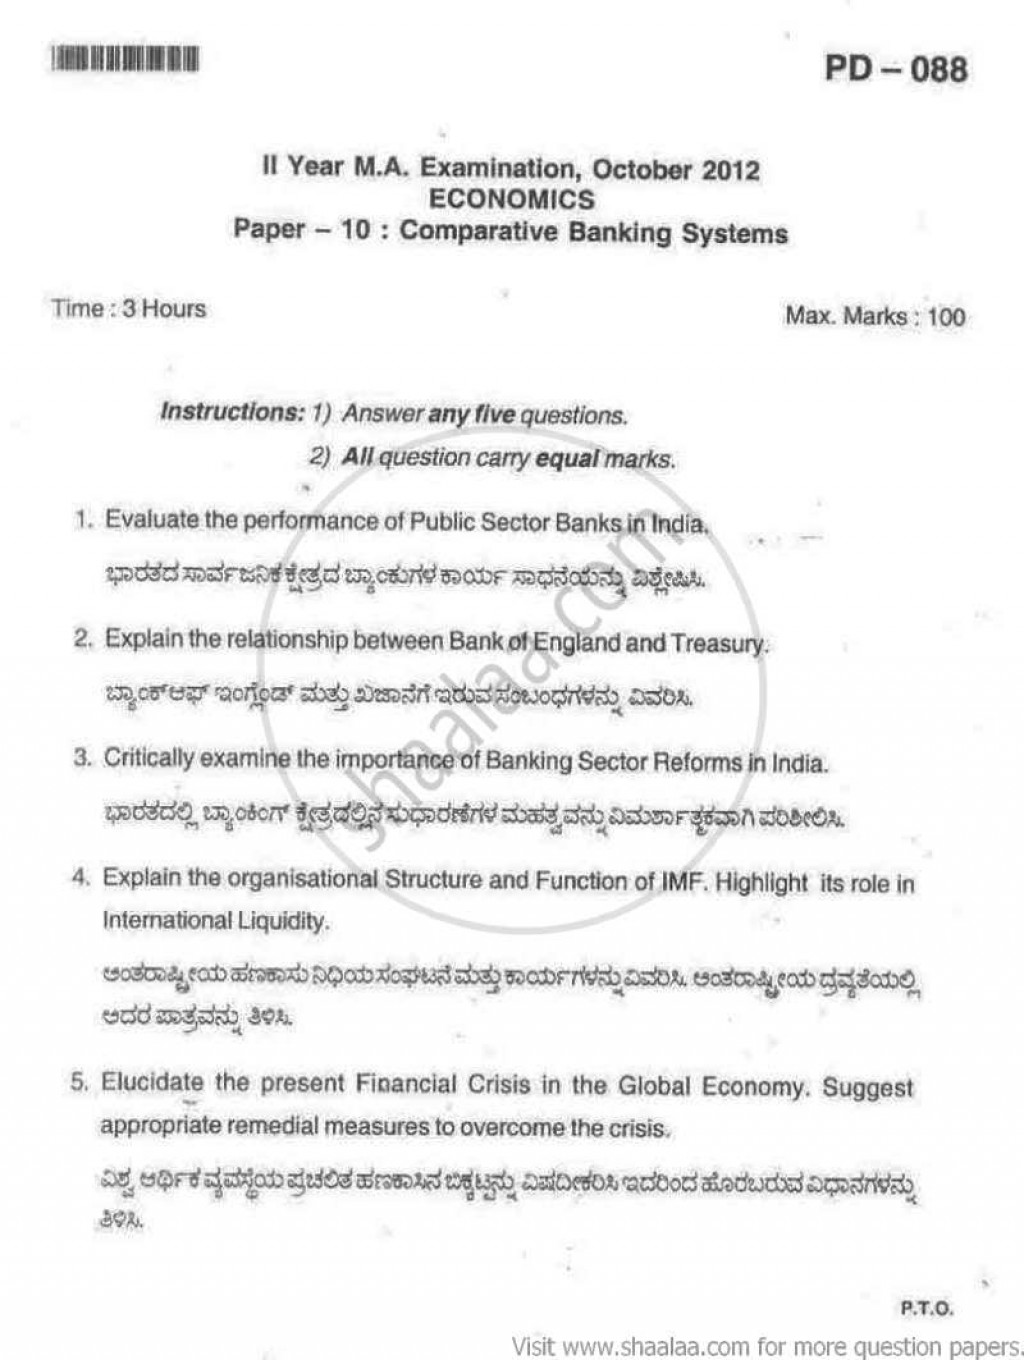 006 Essays Spanish Essay In Page Writing An Tips India October Arts Economics Ma Part Comparative Banking Systems Bangalore Univers Write Your How To About Yourself Phrases Google What Imposing Is English From Called Large